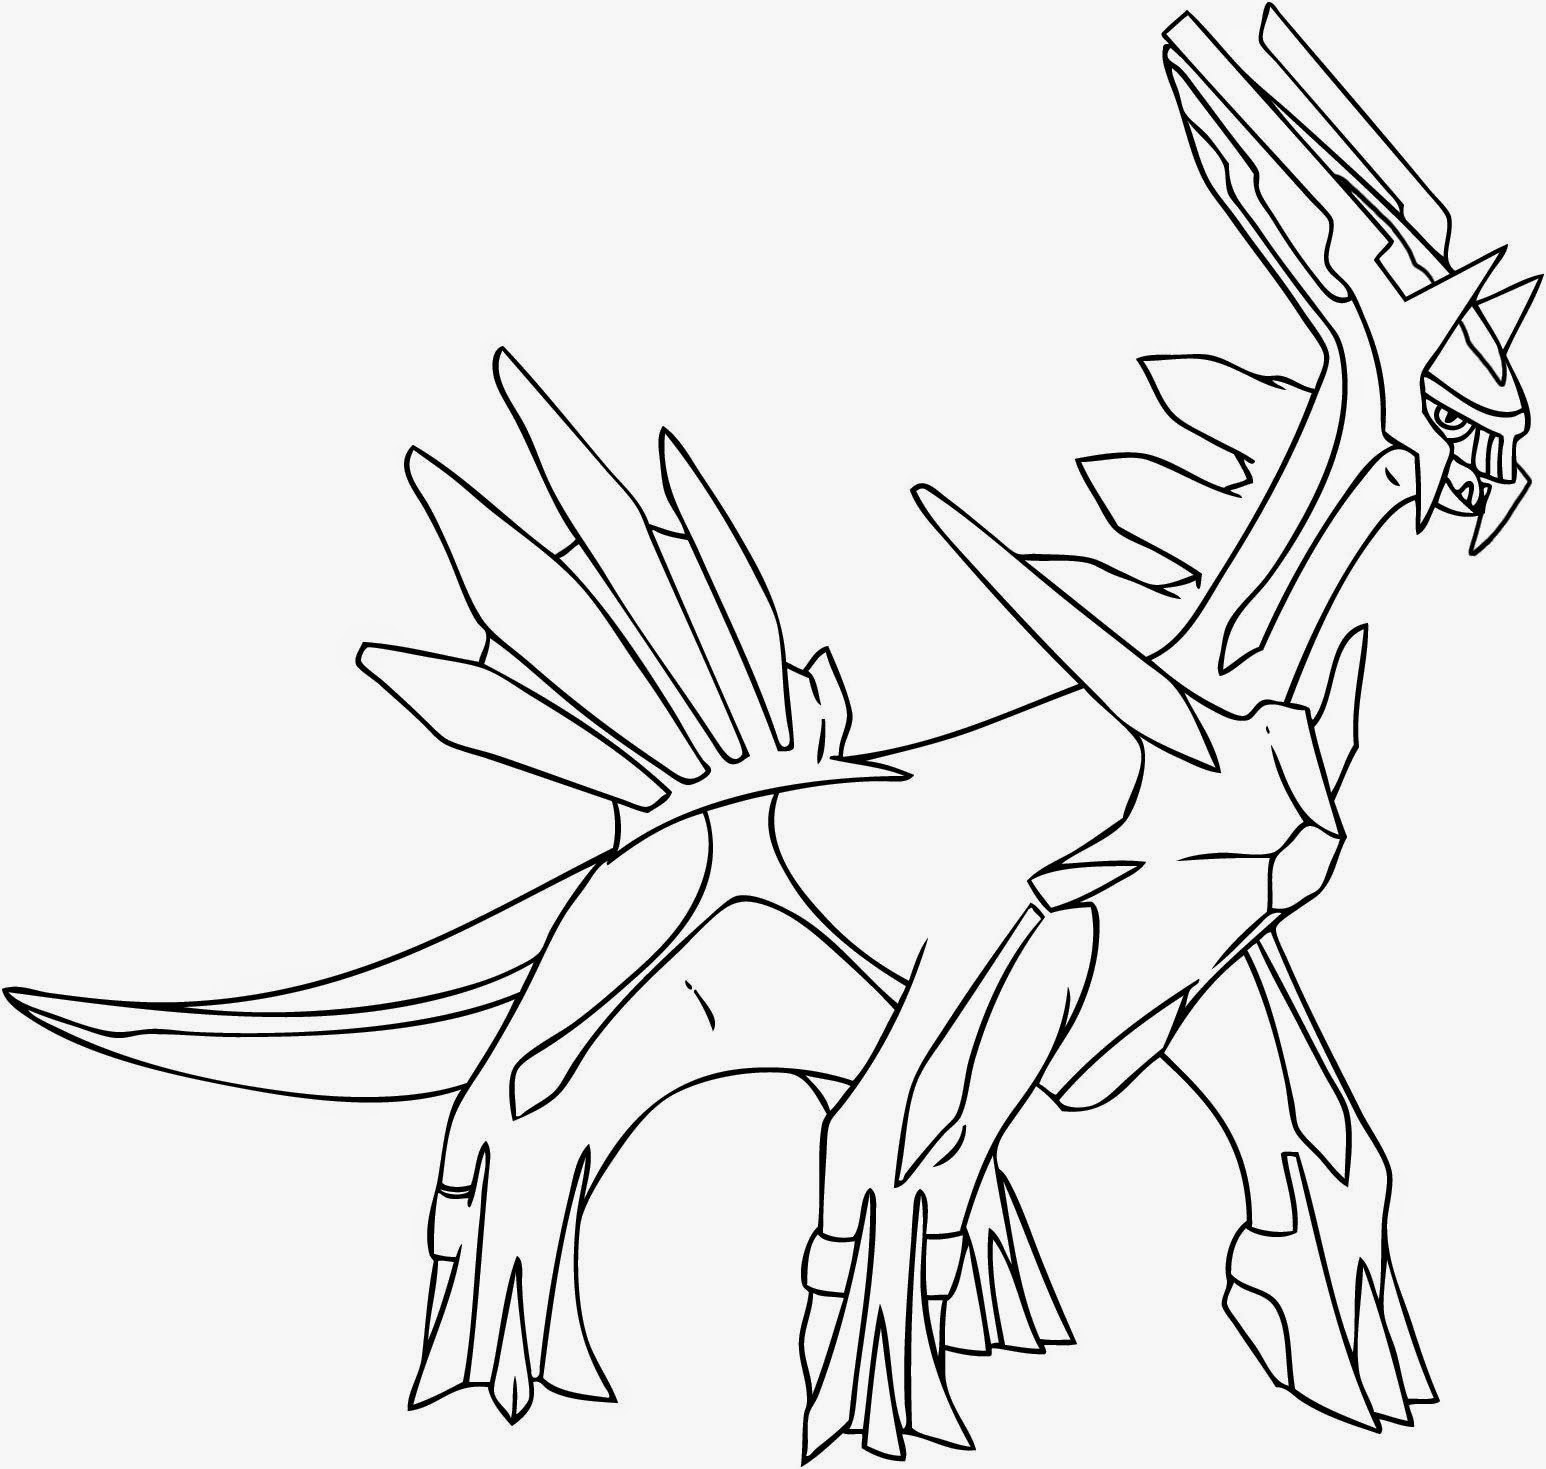 free coloring pokemon pages free coloring pages pokemon coloring pages anime pokemon pages pokemon free coloring